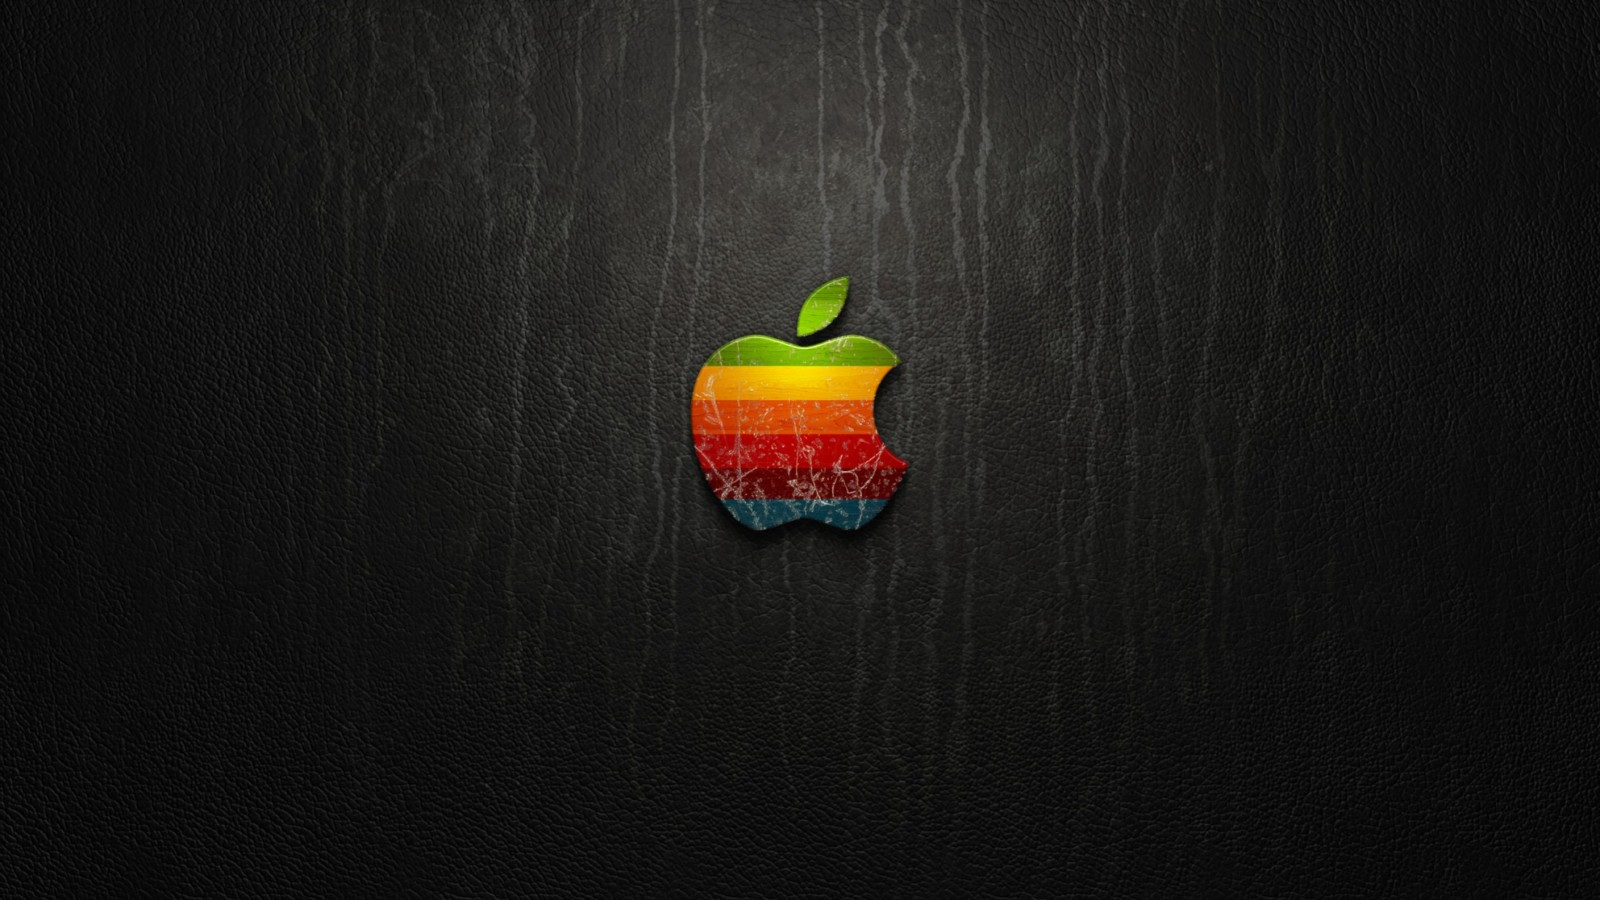 hd apple logo wide wallpaper: desktop hd wallpaper - download free